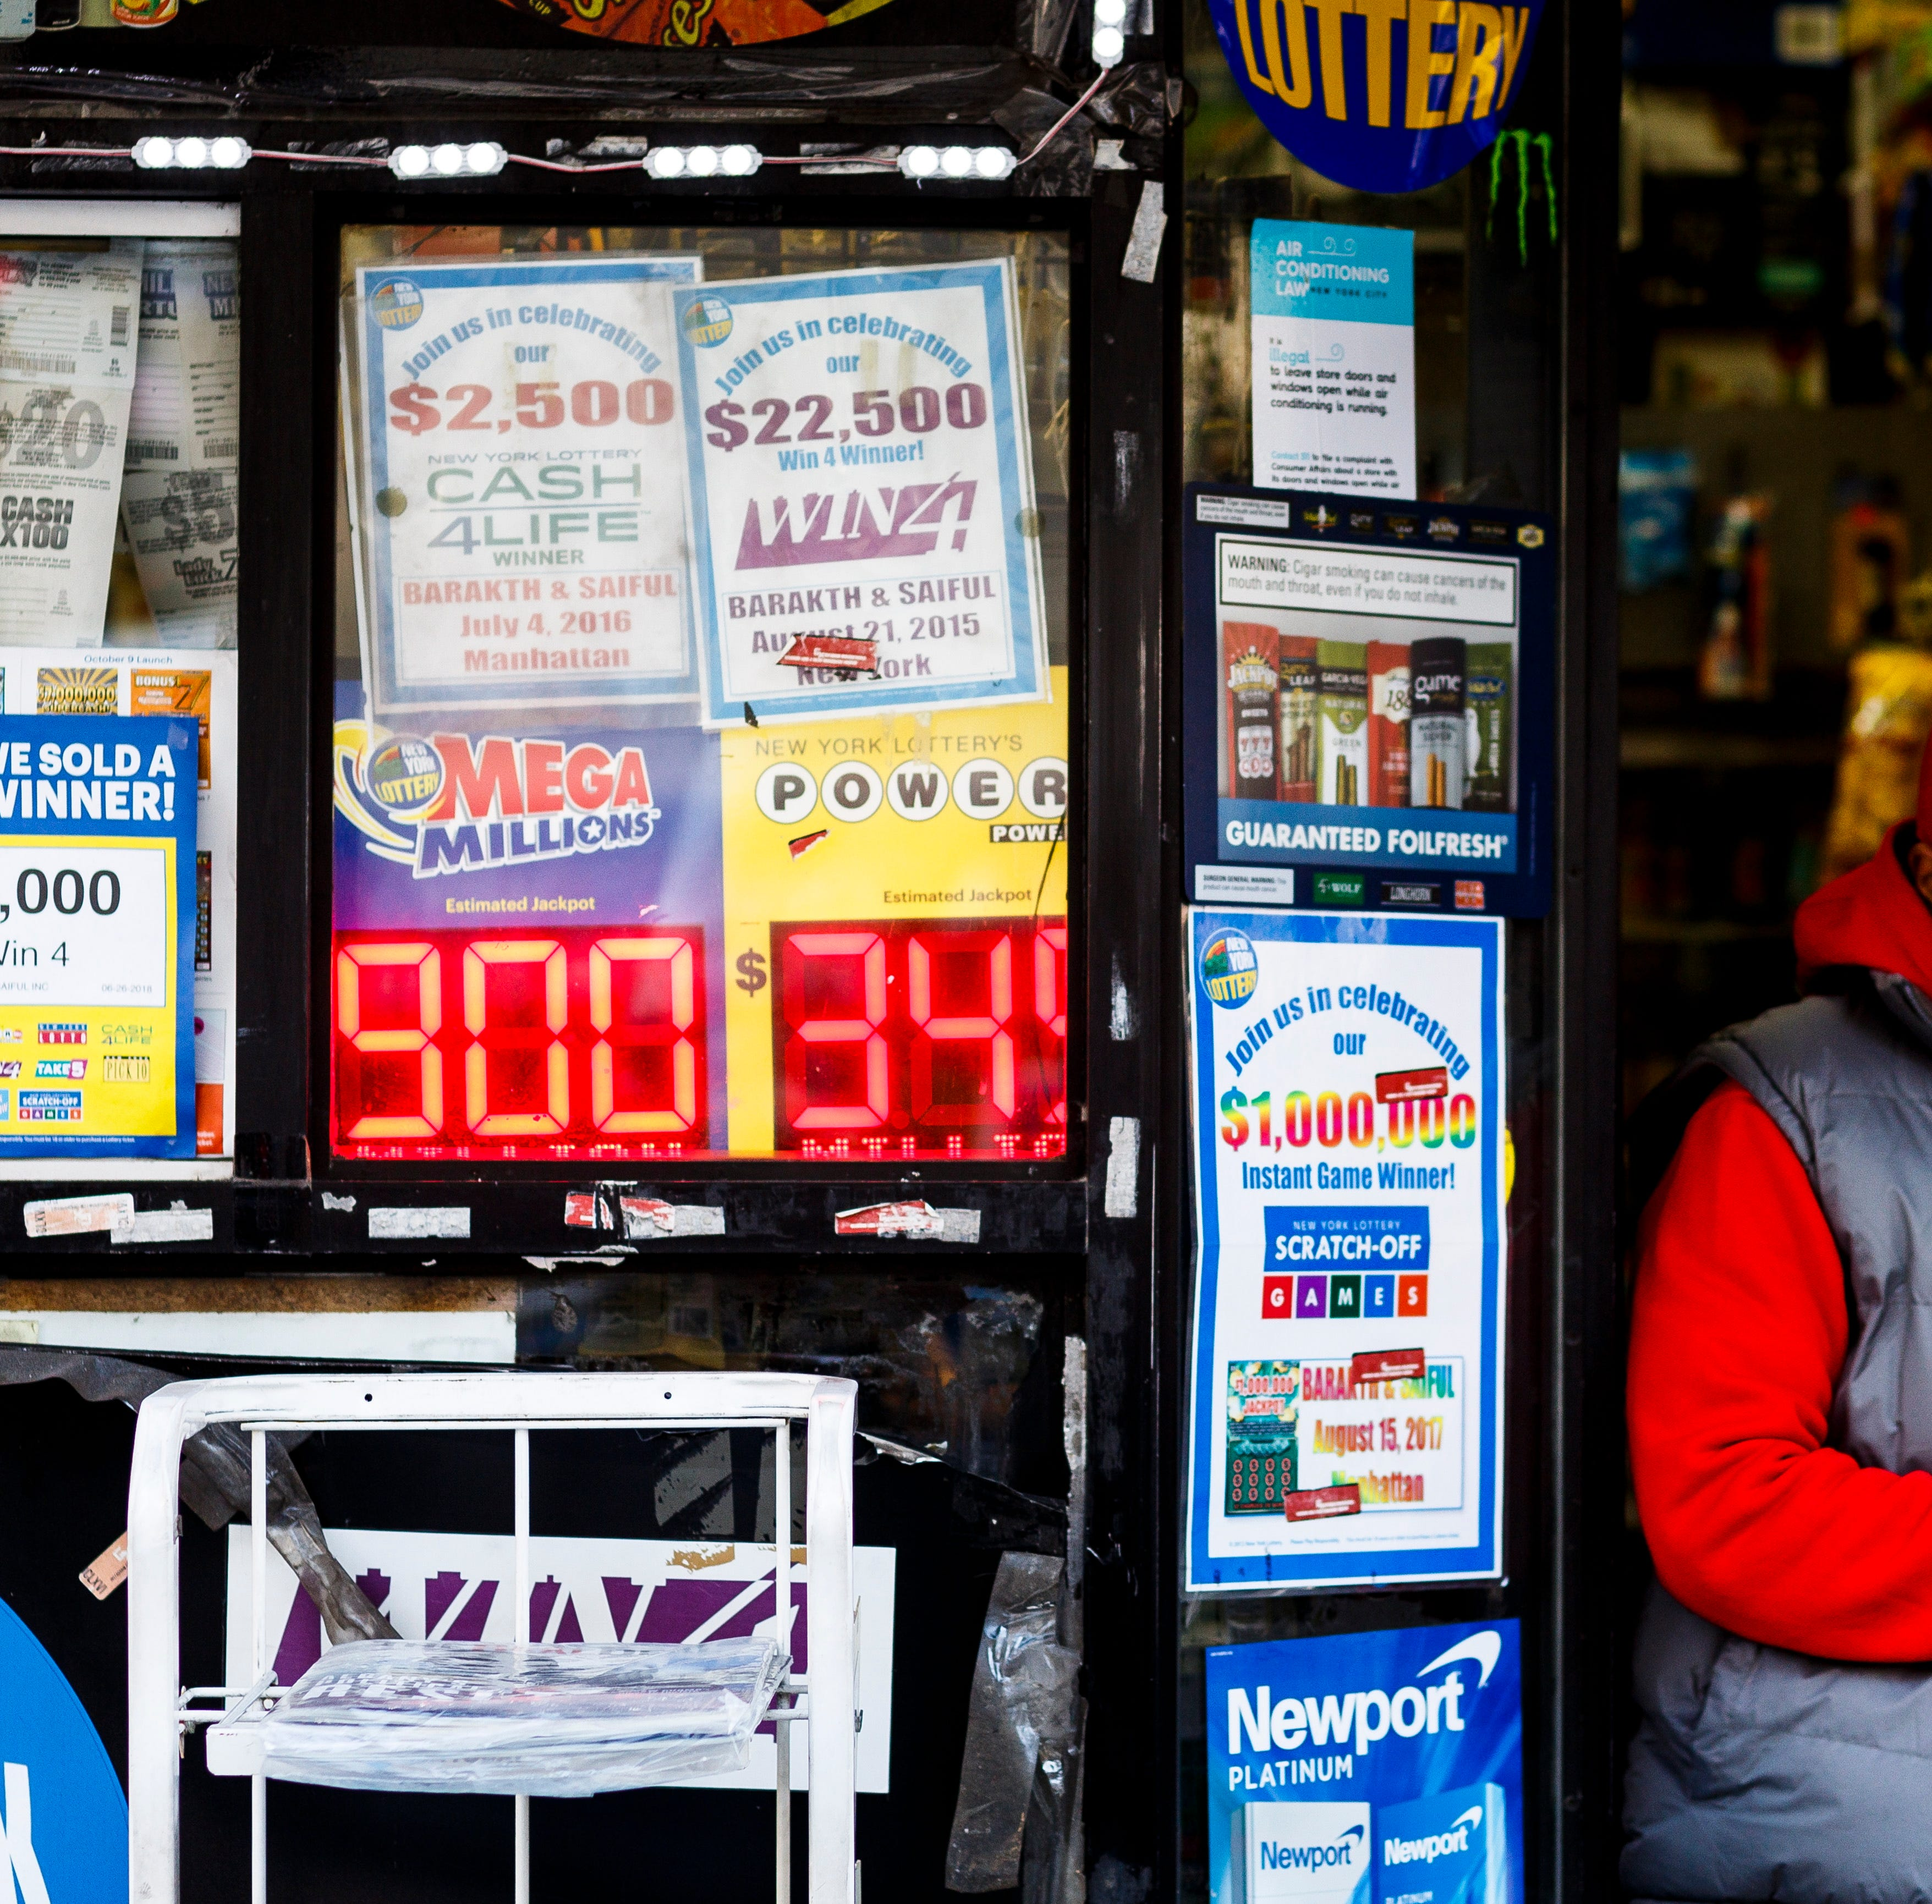 Mega Millions 2018: What are the odds of winning the $970 million jackpot, and more questions answered